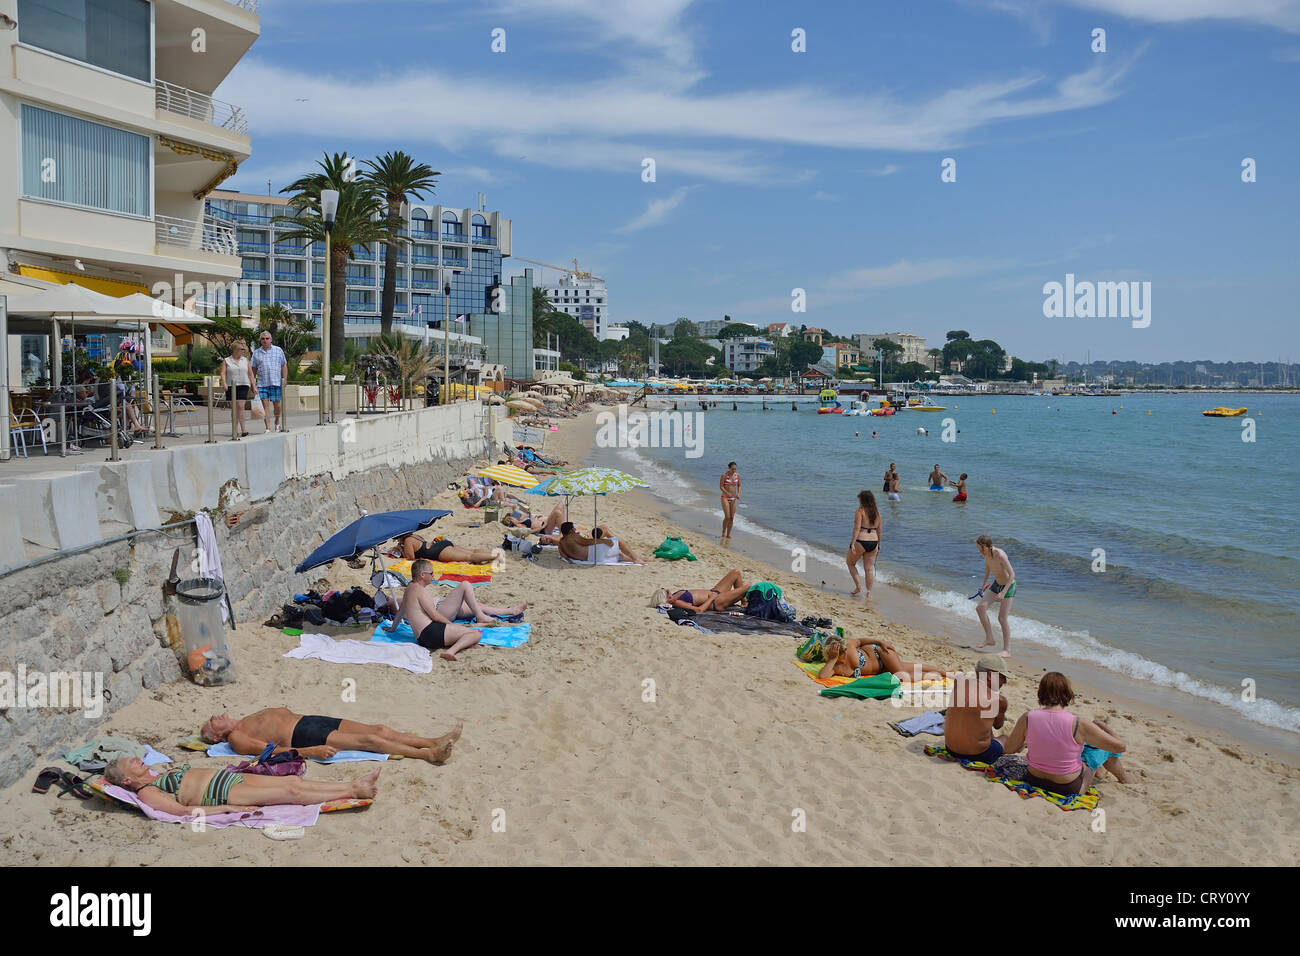 plage publique public beach juan les pins c te d 39 azur stock photo royalty free image. Black Bedroom Furniture Sets. Home Design Ideas